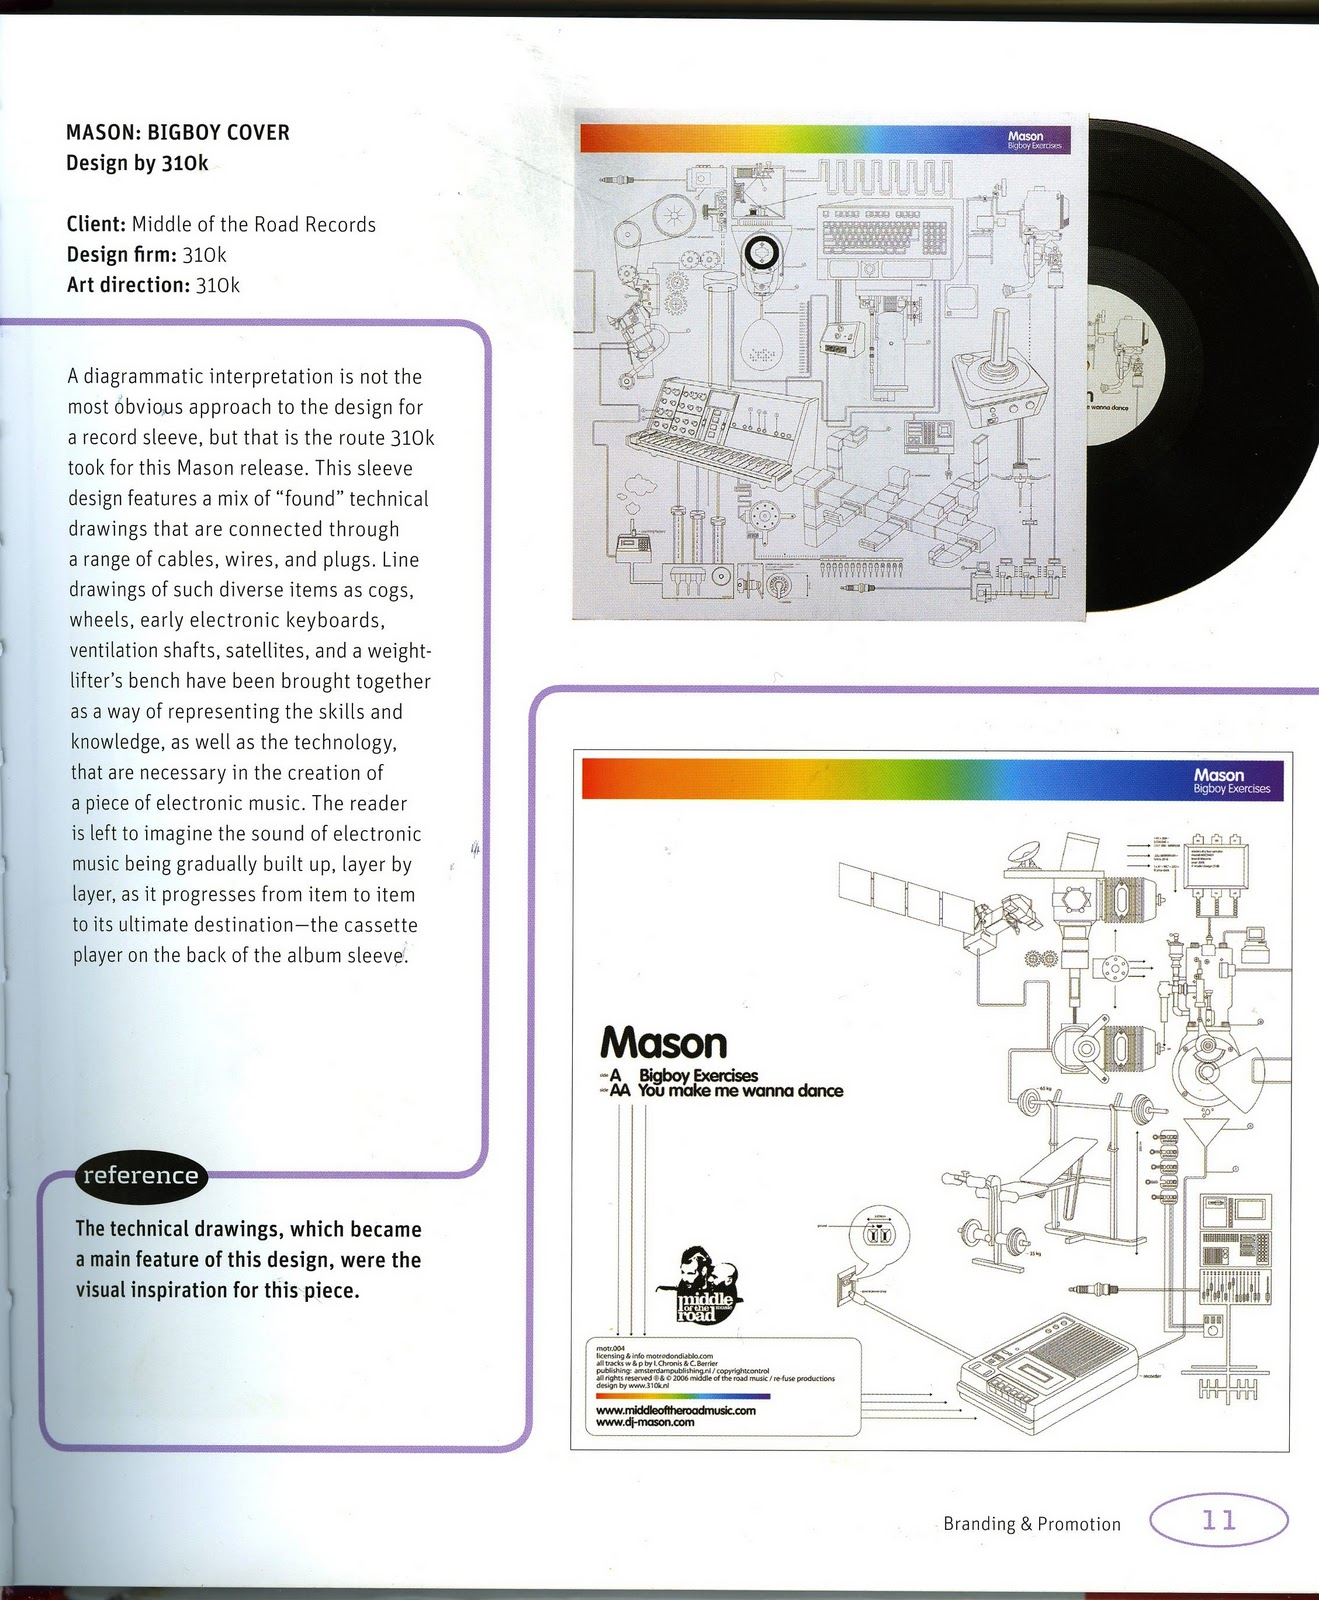 design context good is information graphics